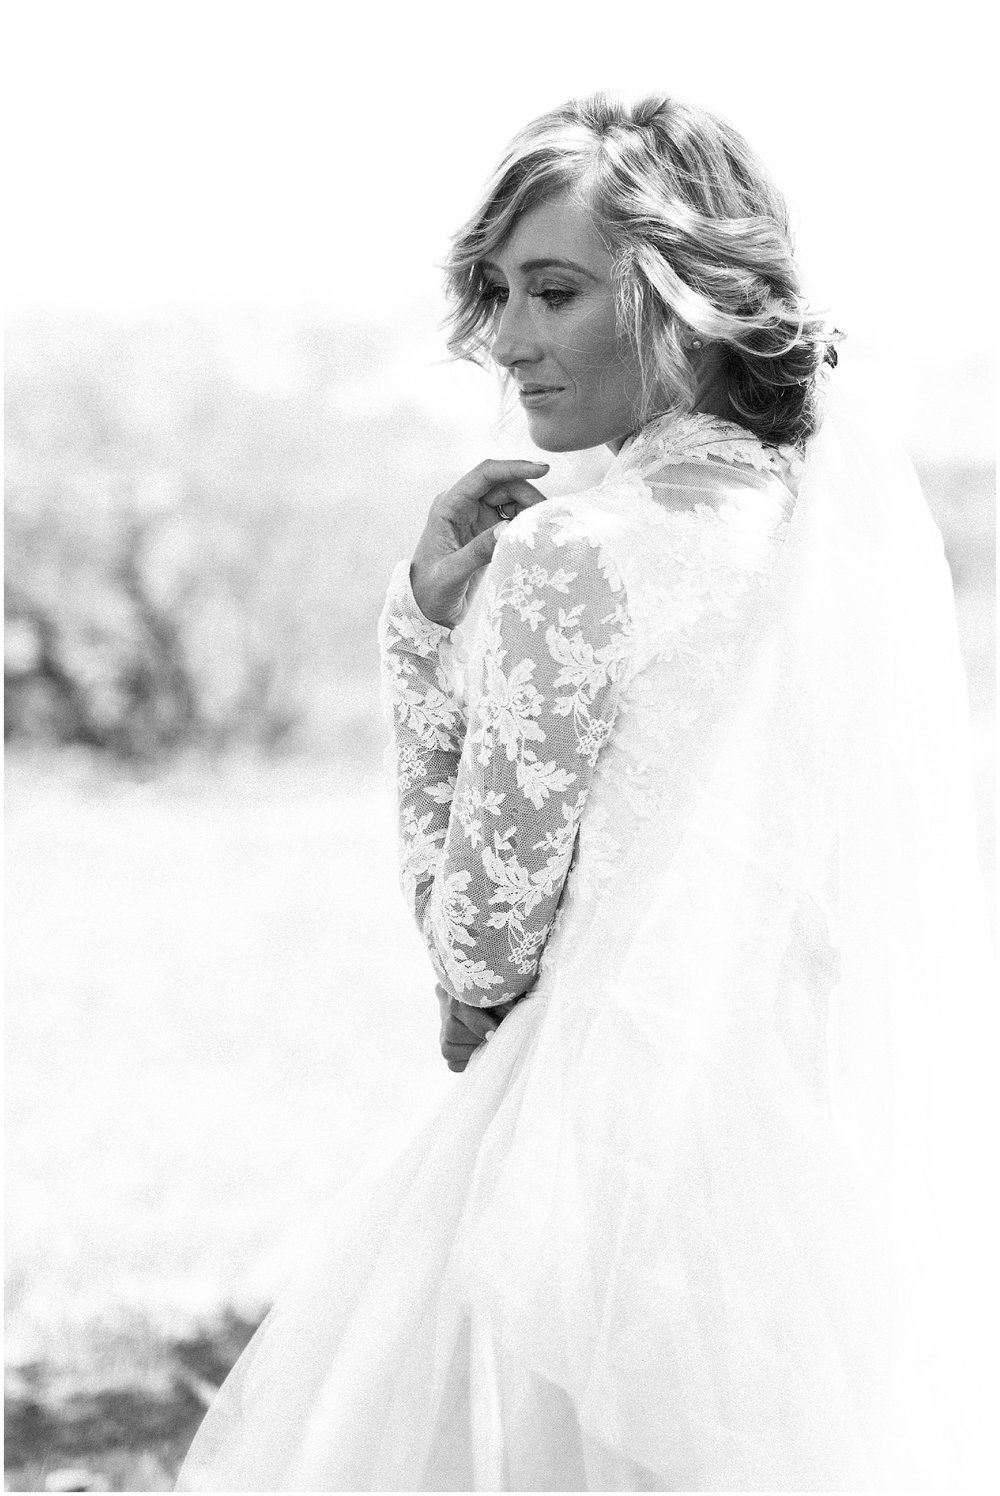 AliciaLandman_JoleneandZander_Wedding_The Pretty Blog_0439.jpg